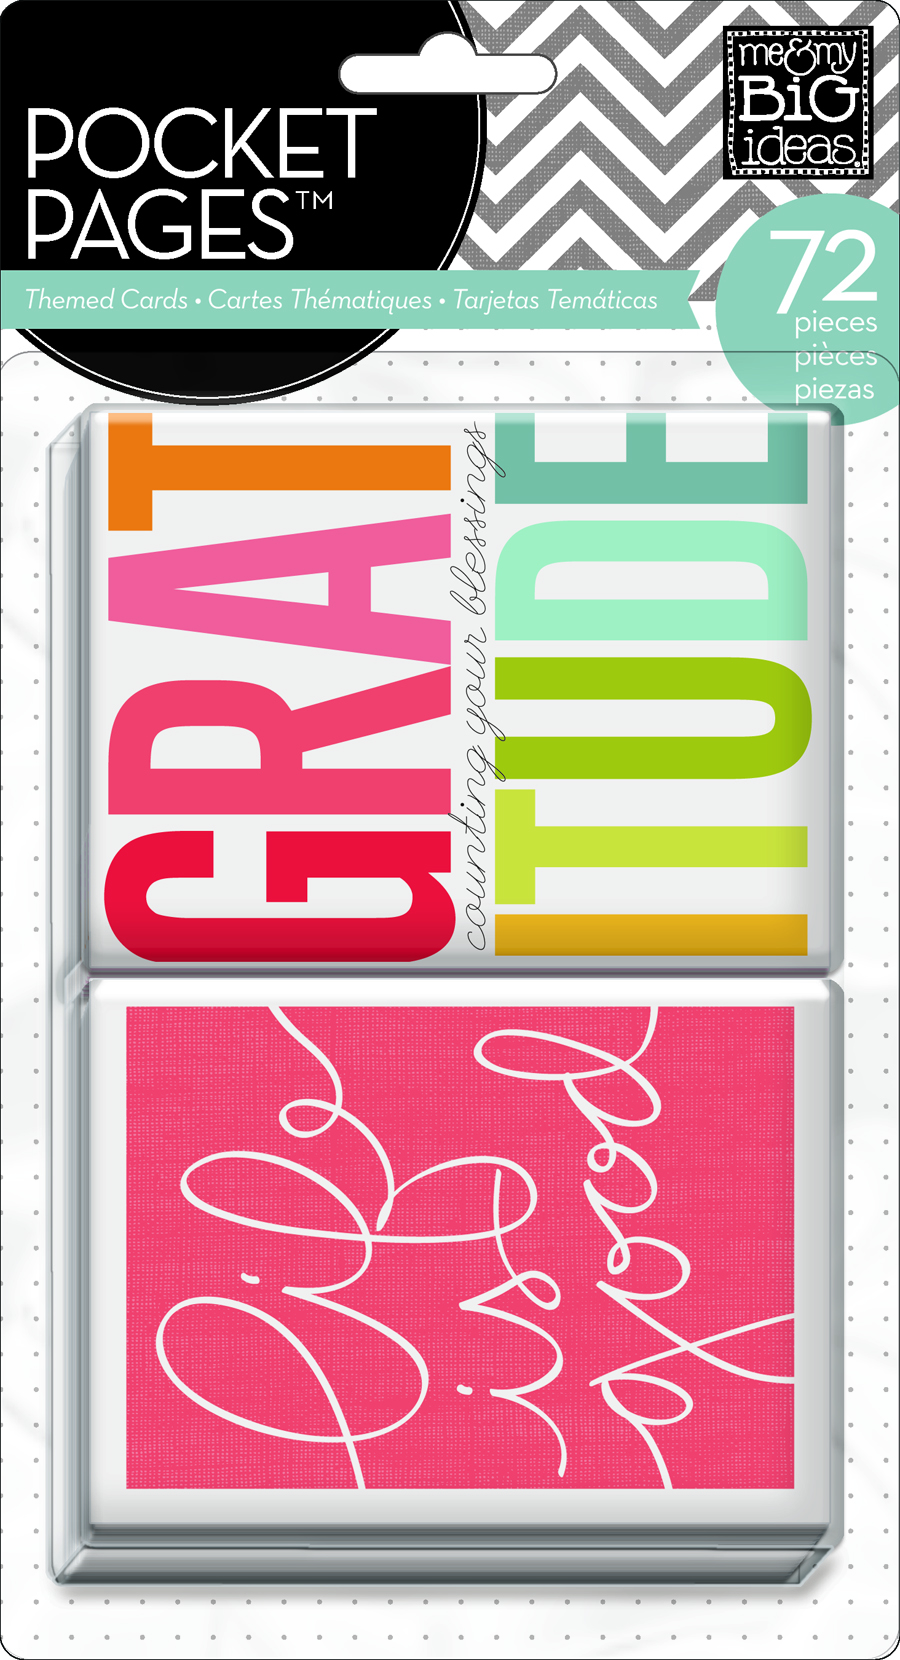 'Story of Me' POCKET PAGES™ cards   me & my BIG ideas.jpg